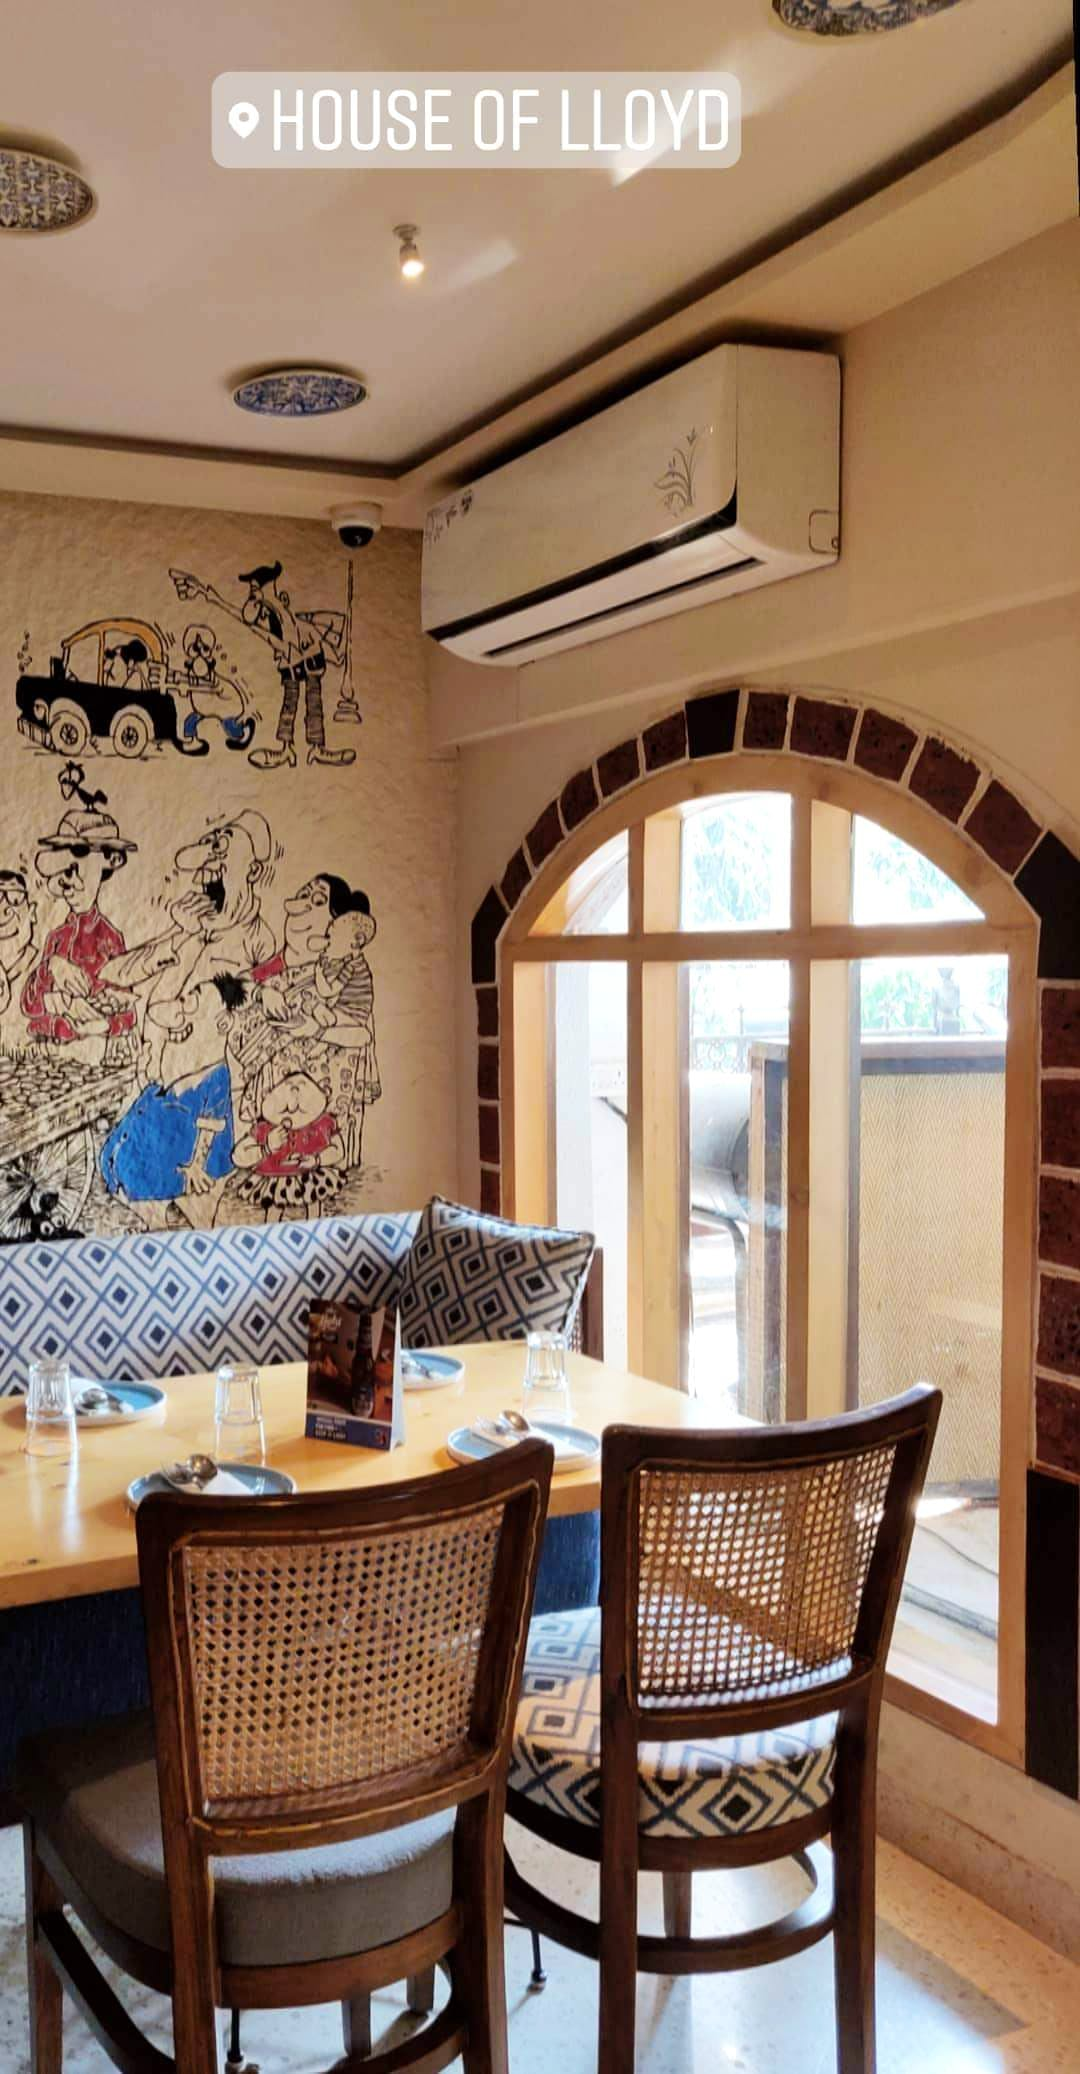 Experience Chill Goan Vibes & Savour Seafood At This Eatery In The Suburbs